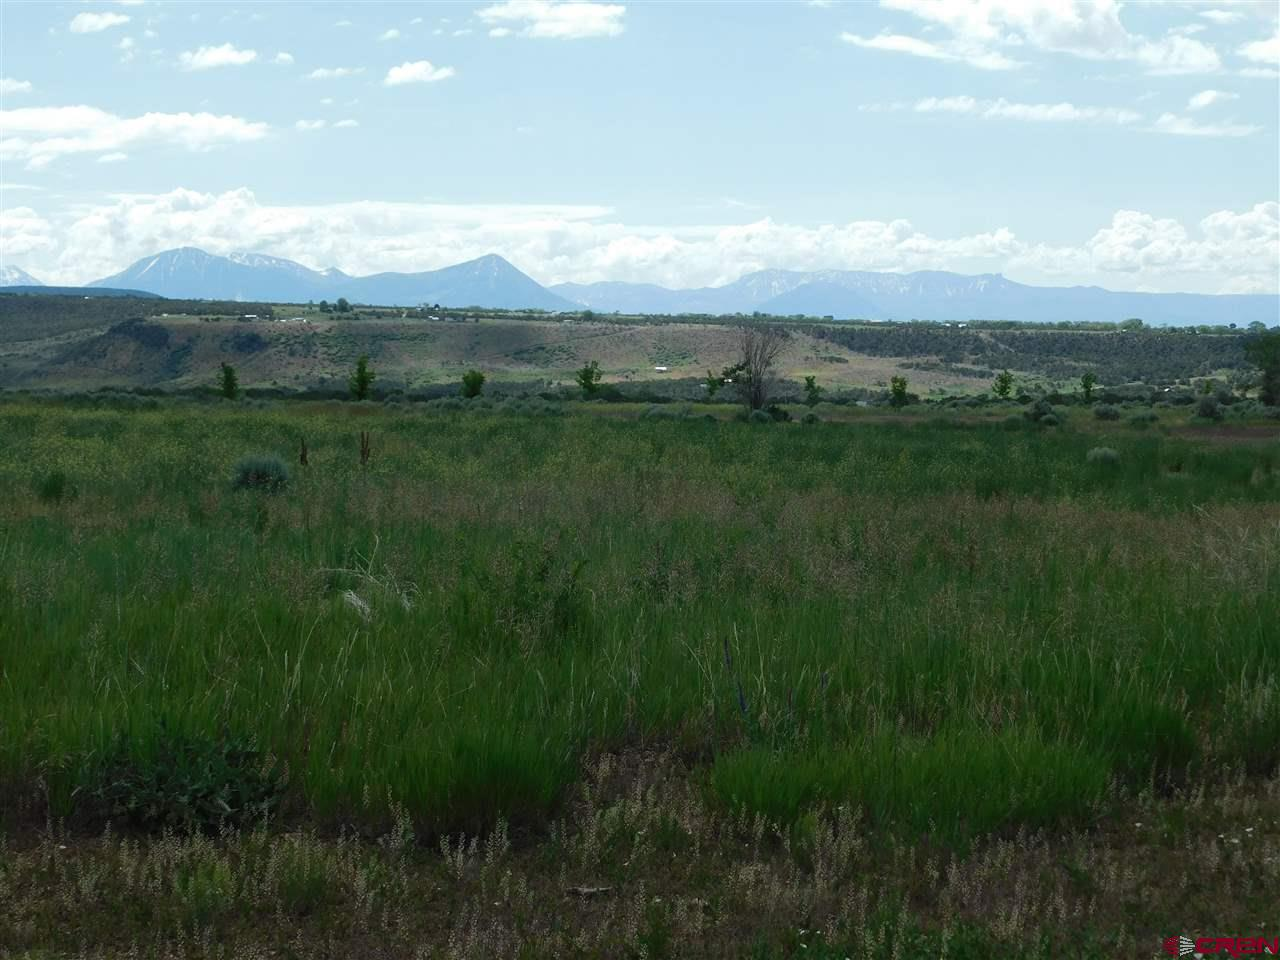 26.24 acre parcel is part of a planned phased subdivision on Cedar Mesa. 10 remaining lots in three remaining phases, the first phase is already sold and built out with nice custom homes. Great country location with amazing views of the Grand Mesa, West Elks and San Juan Mountain range. See associated docs for subdivision plan.